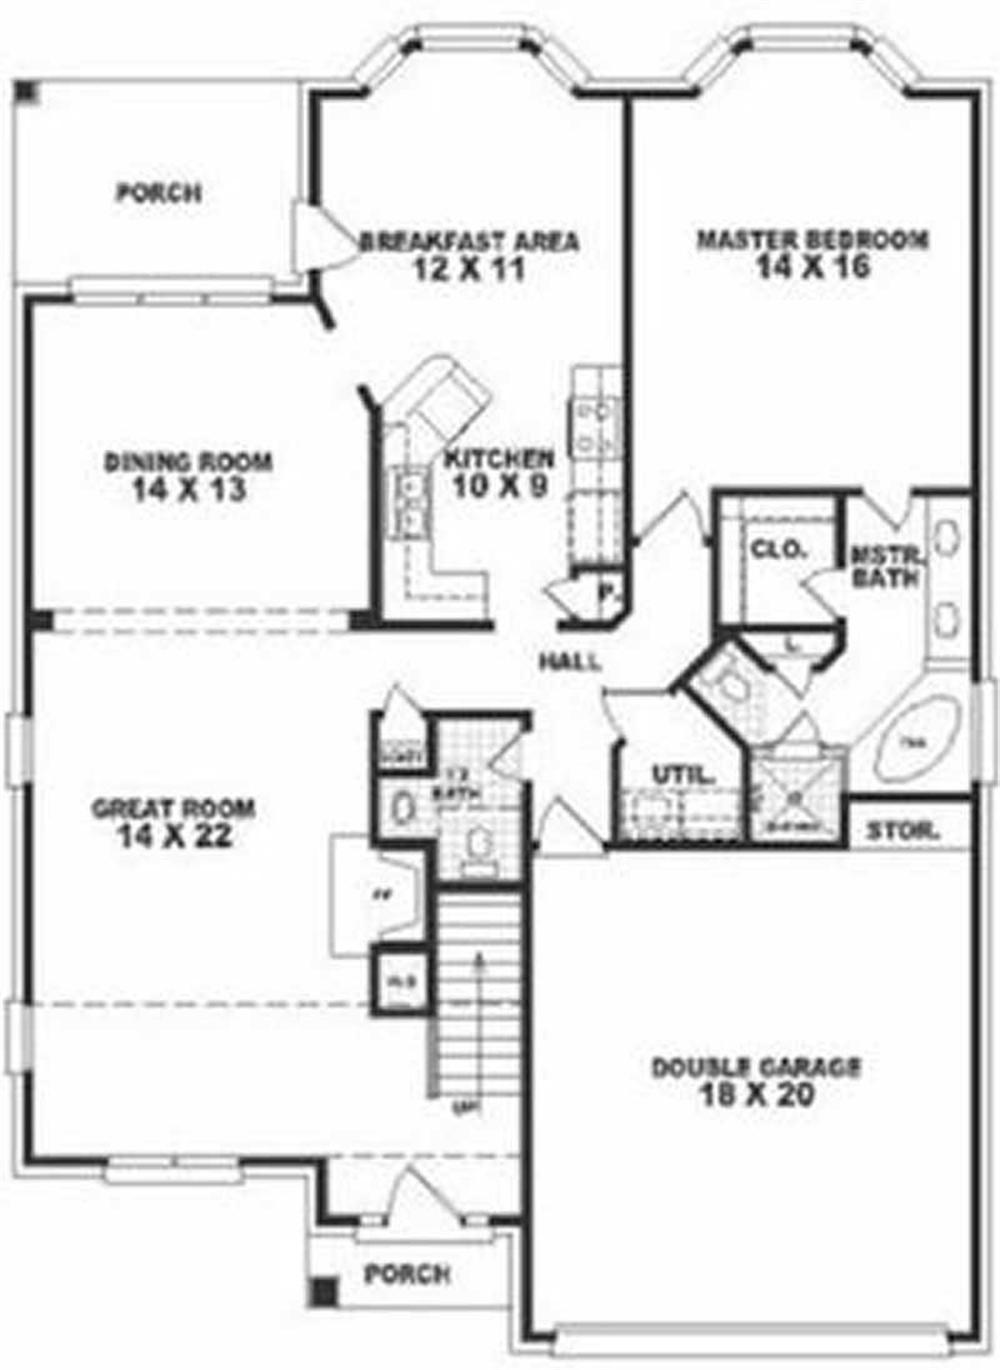 Large images for house plan 170 2820 for House design collection